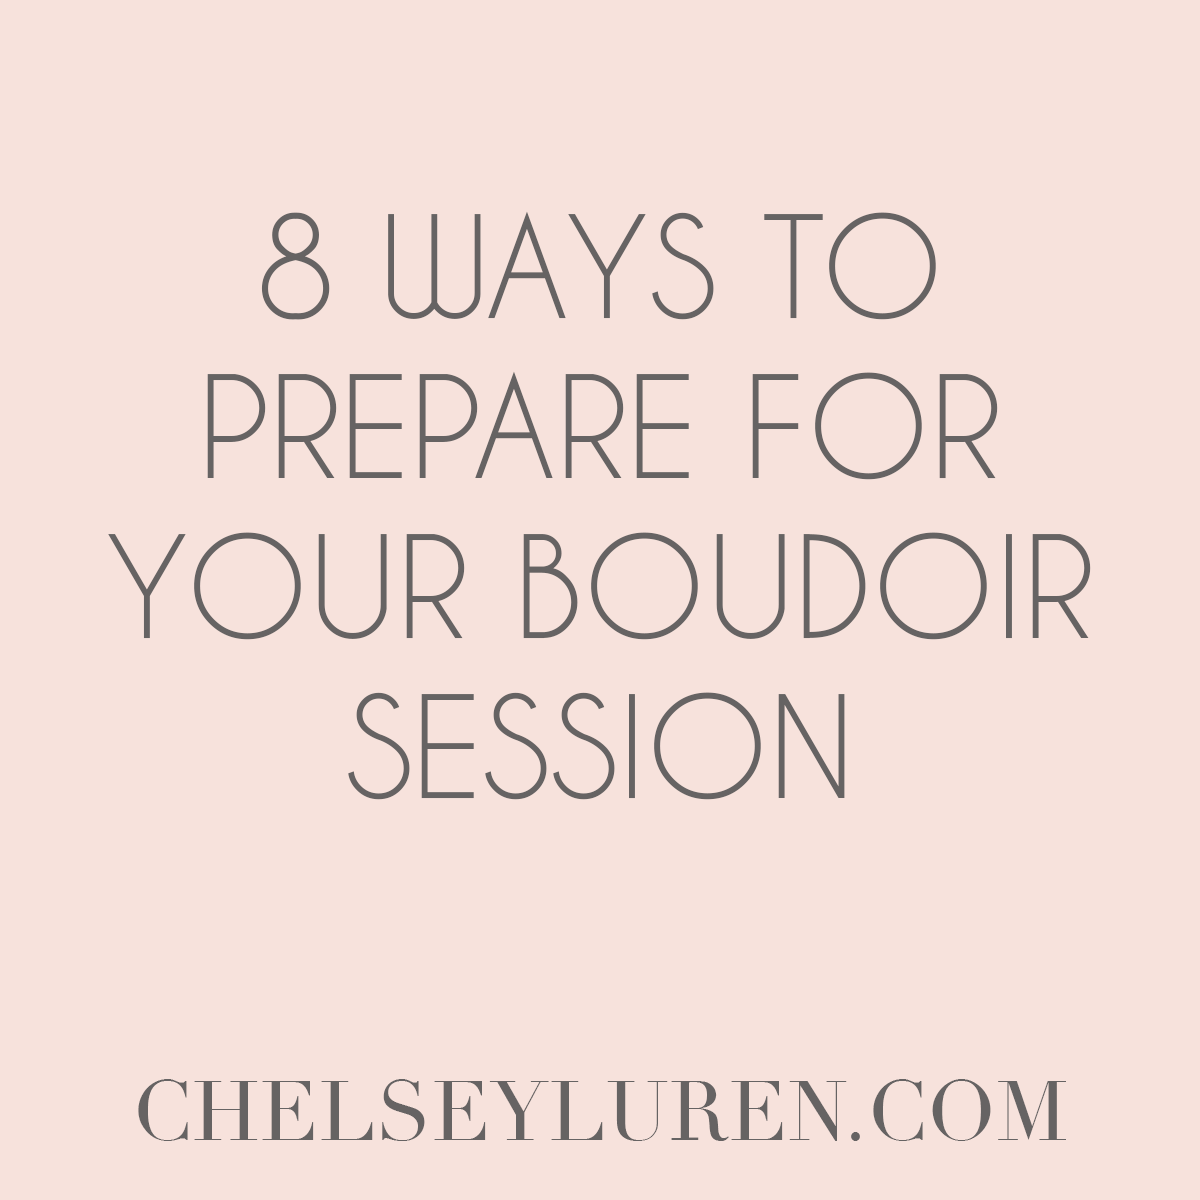 8 ways to prepare for your boudoir session